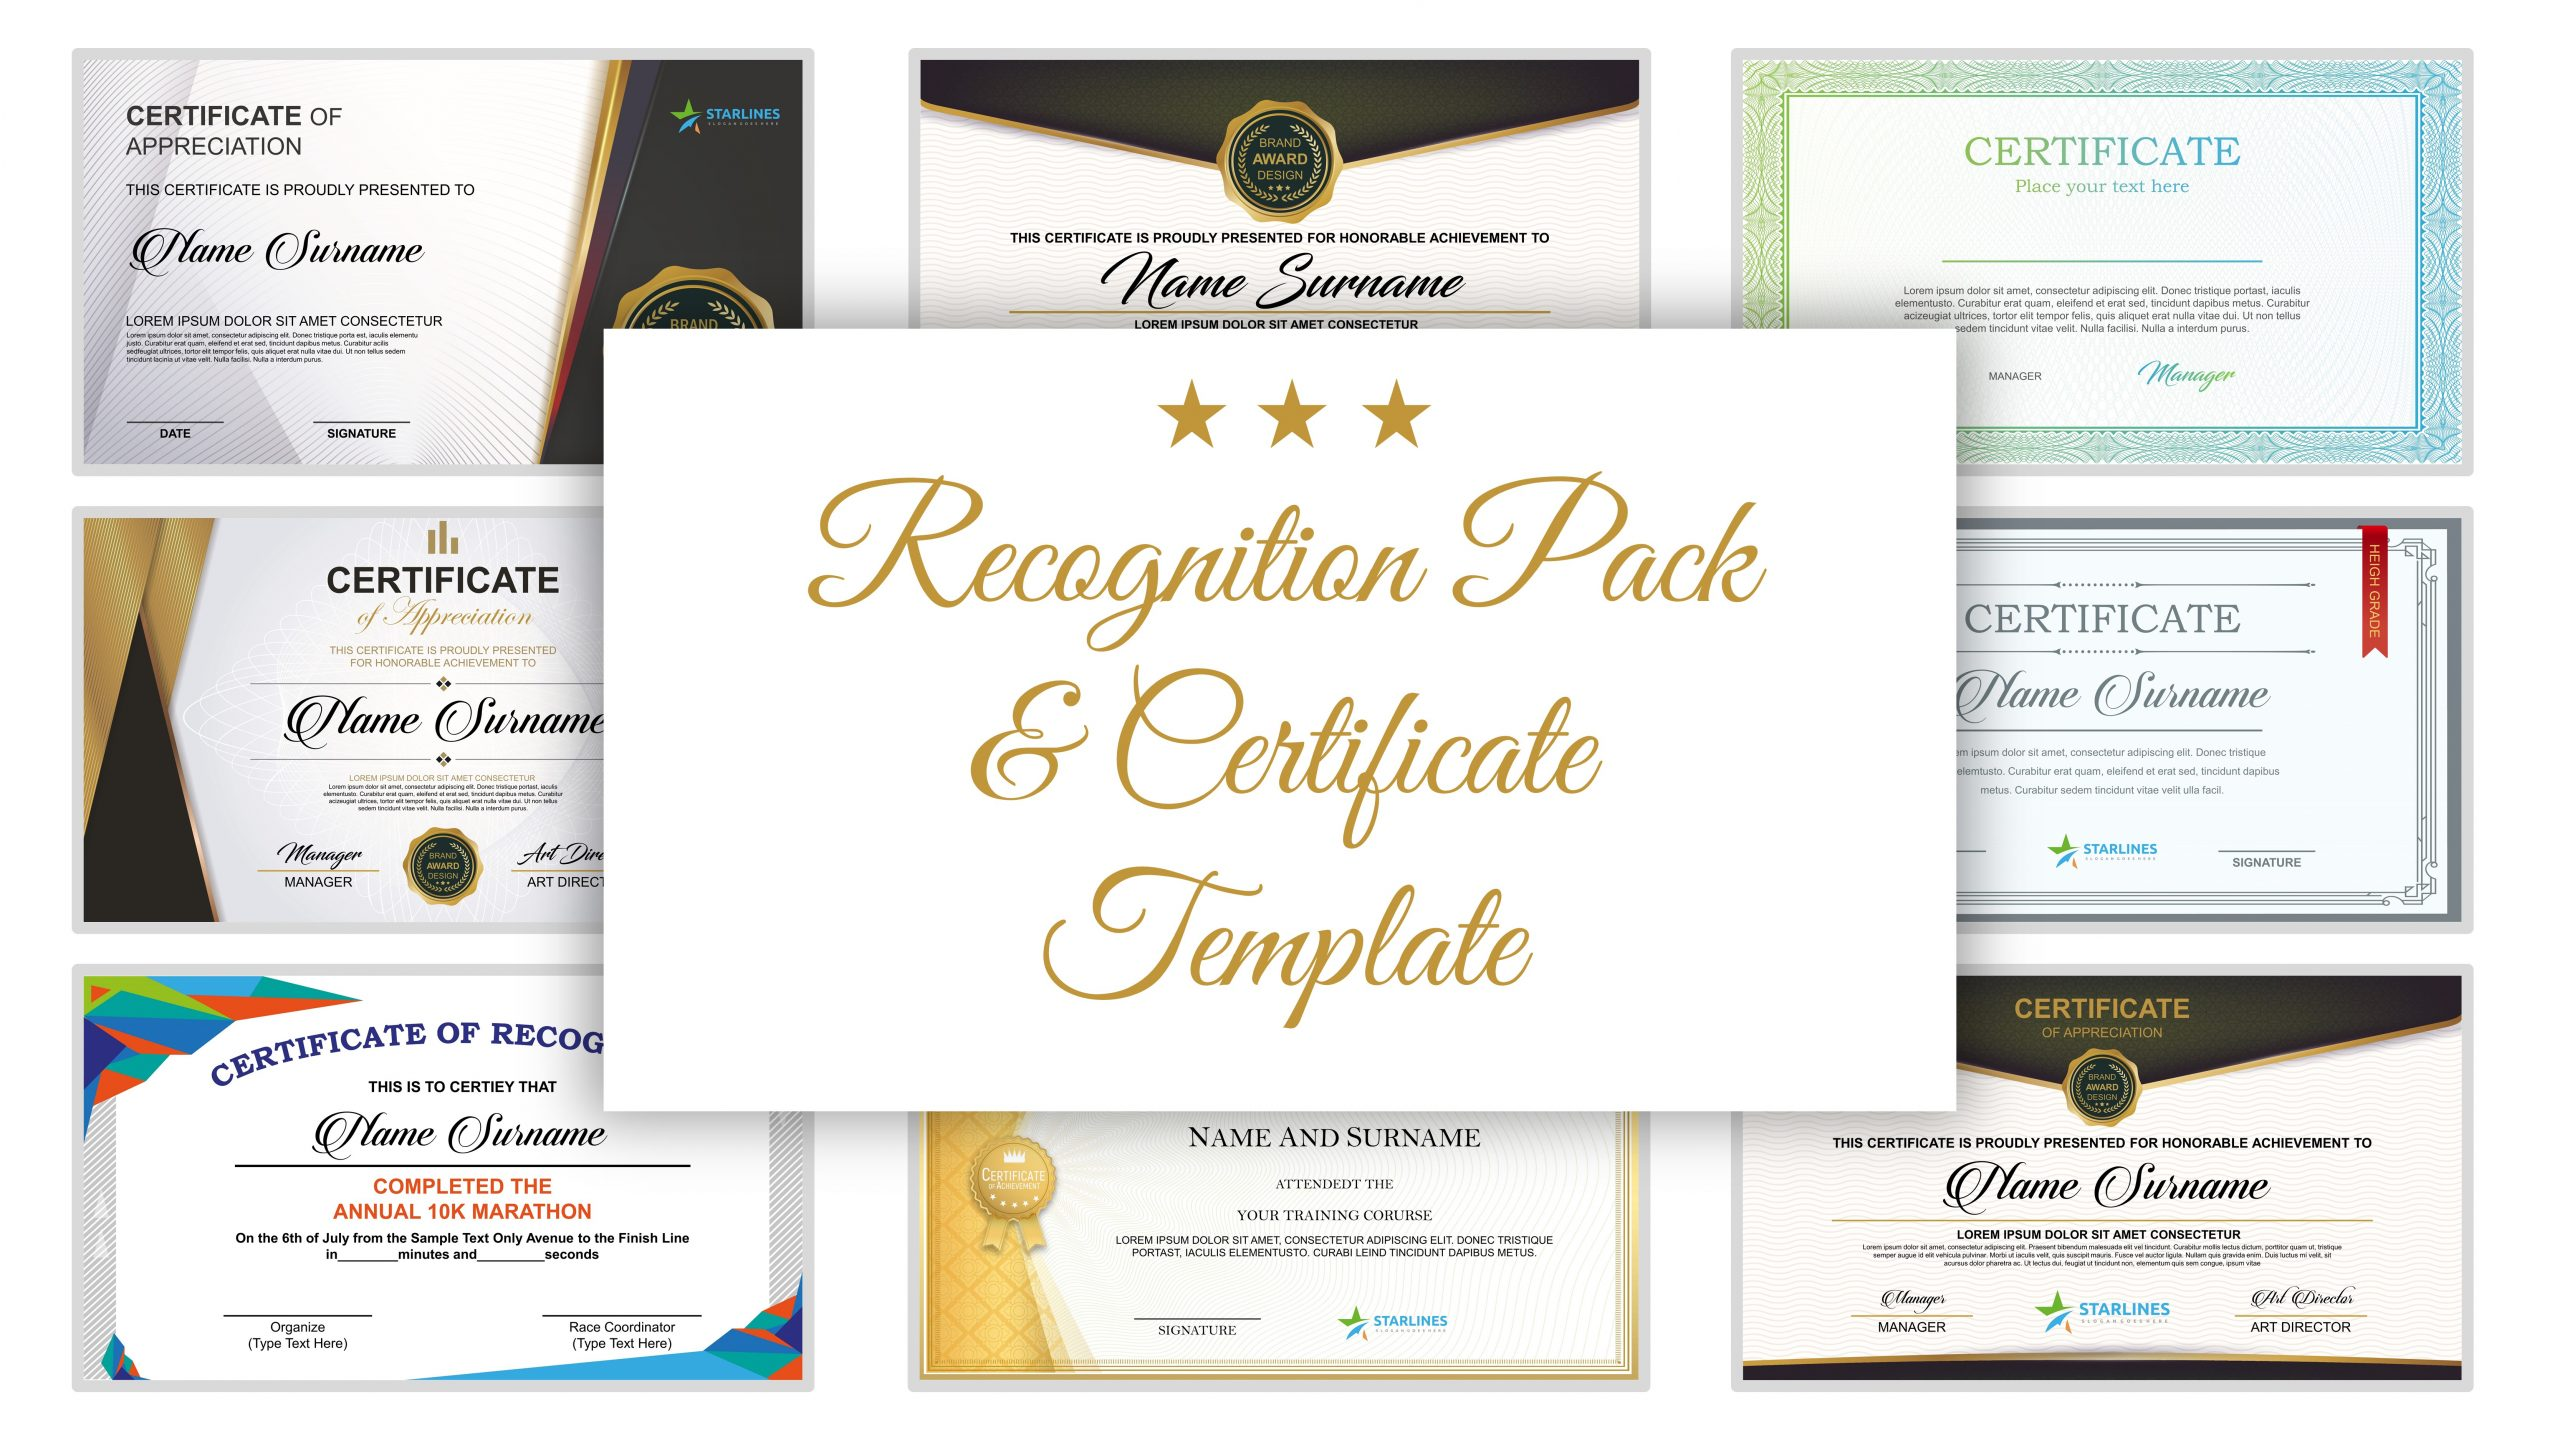 Free presentation template of Recognition Pack & Certificate